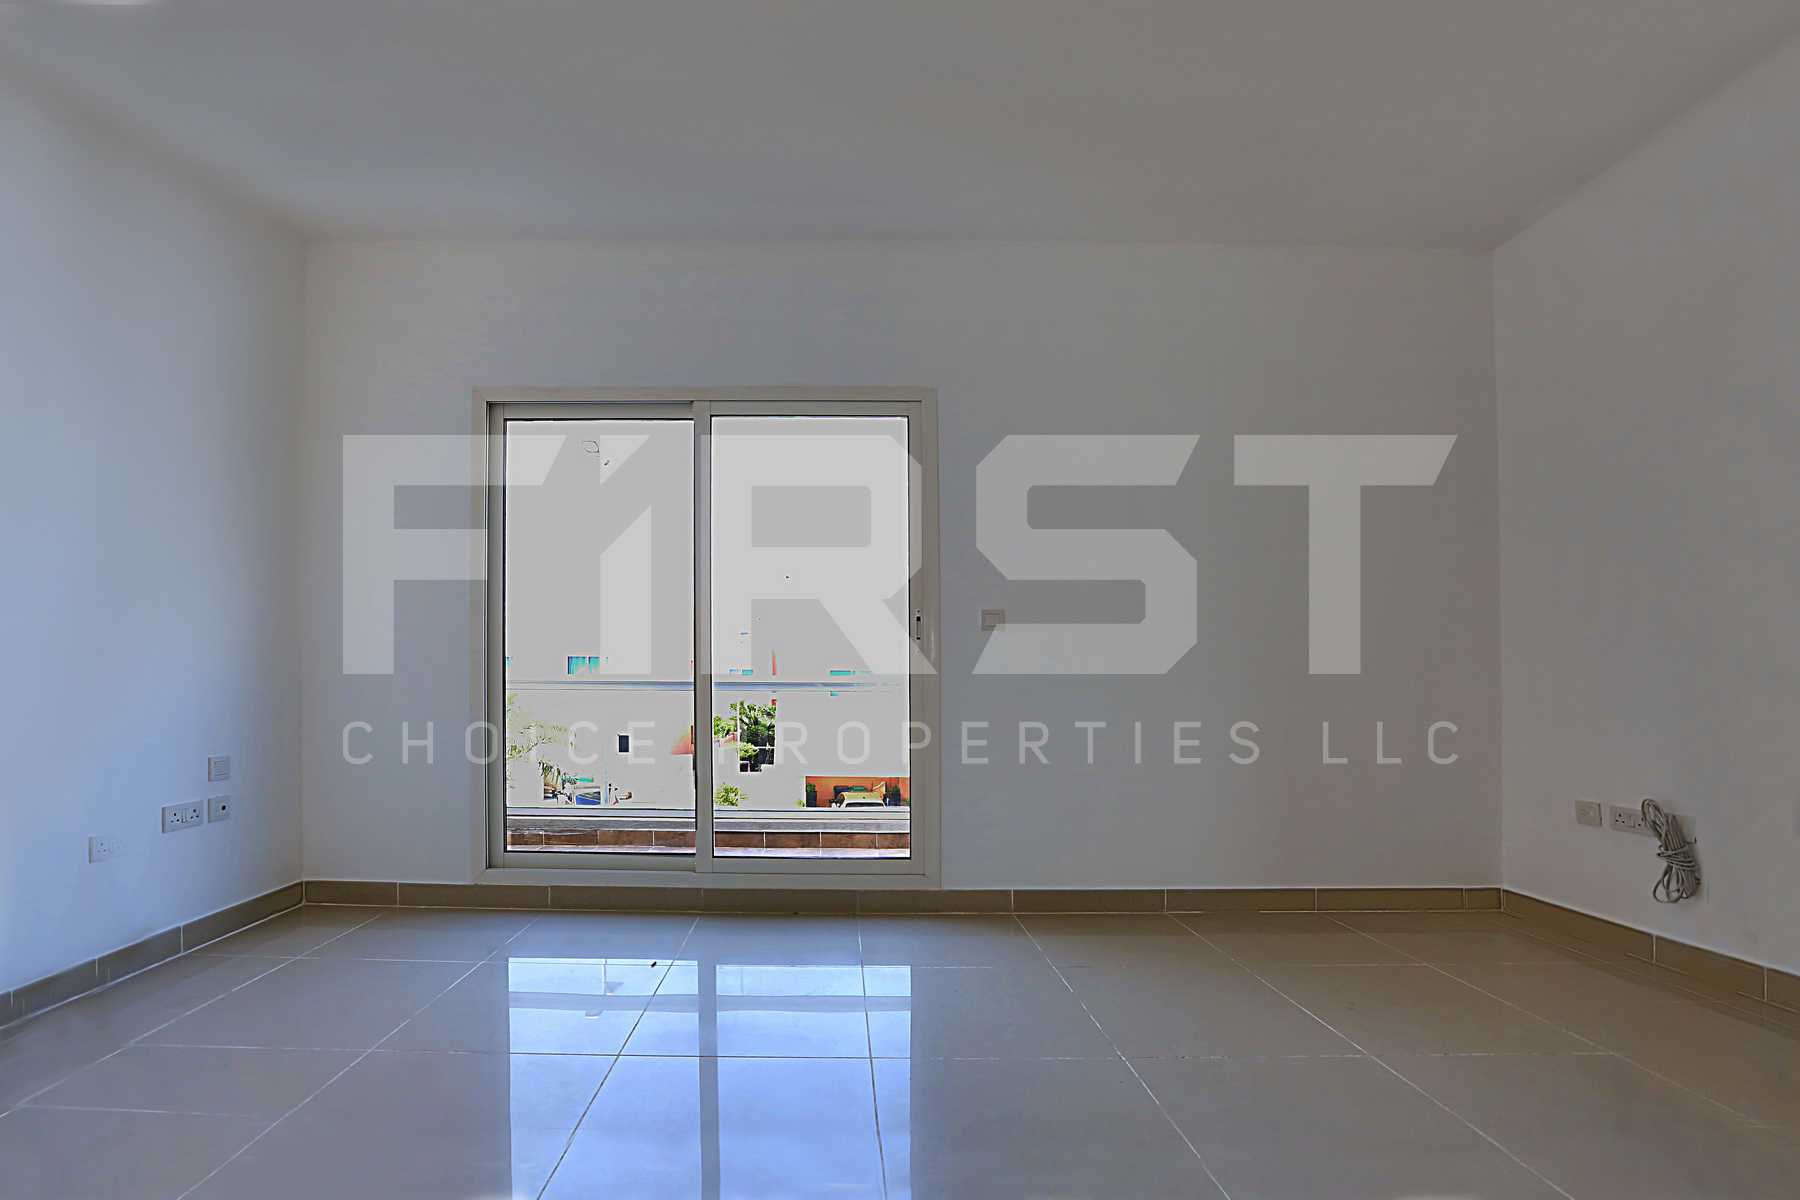 Internal Photo of 3 Bedroom Villa in Al Reef Villas Al Reef Abu Dhabi UAE 225.2 sq.m 2424 sq.ft (21).jpg